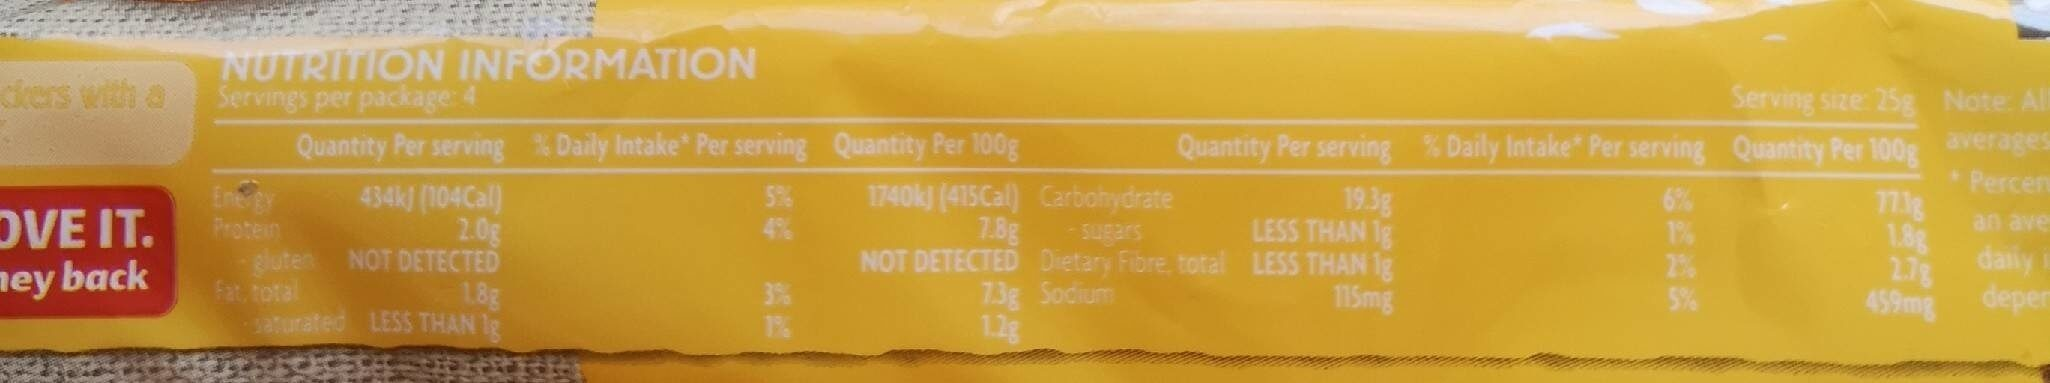 Cheese Rice Crackers - Nutrition facts - en